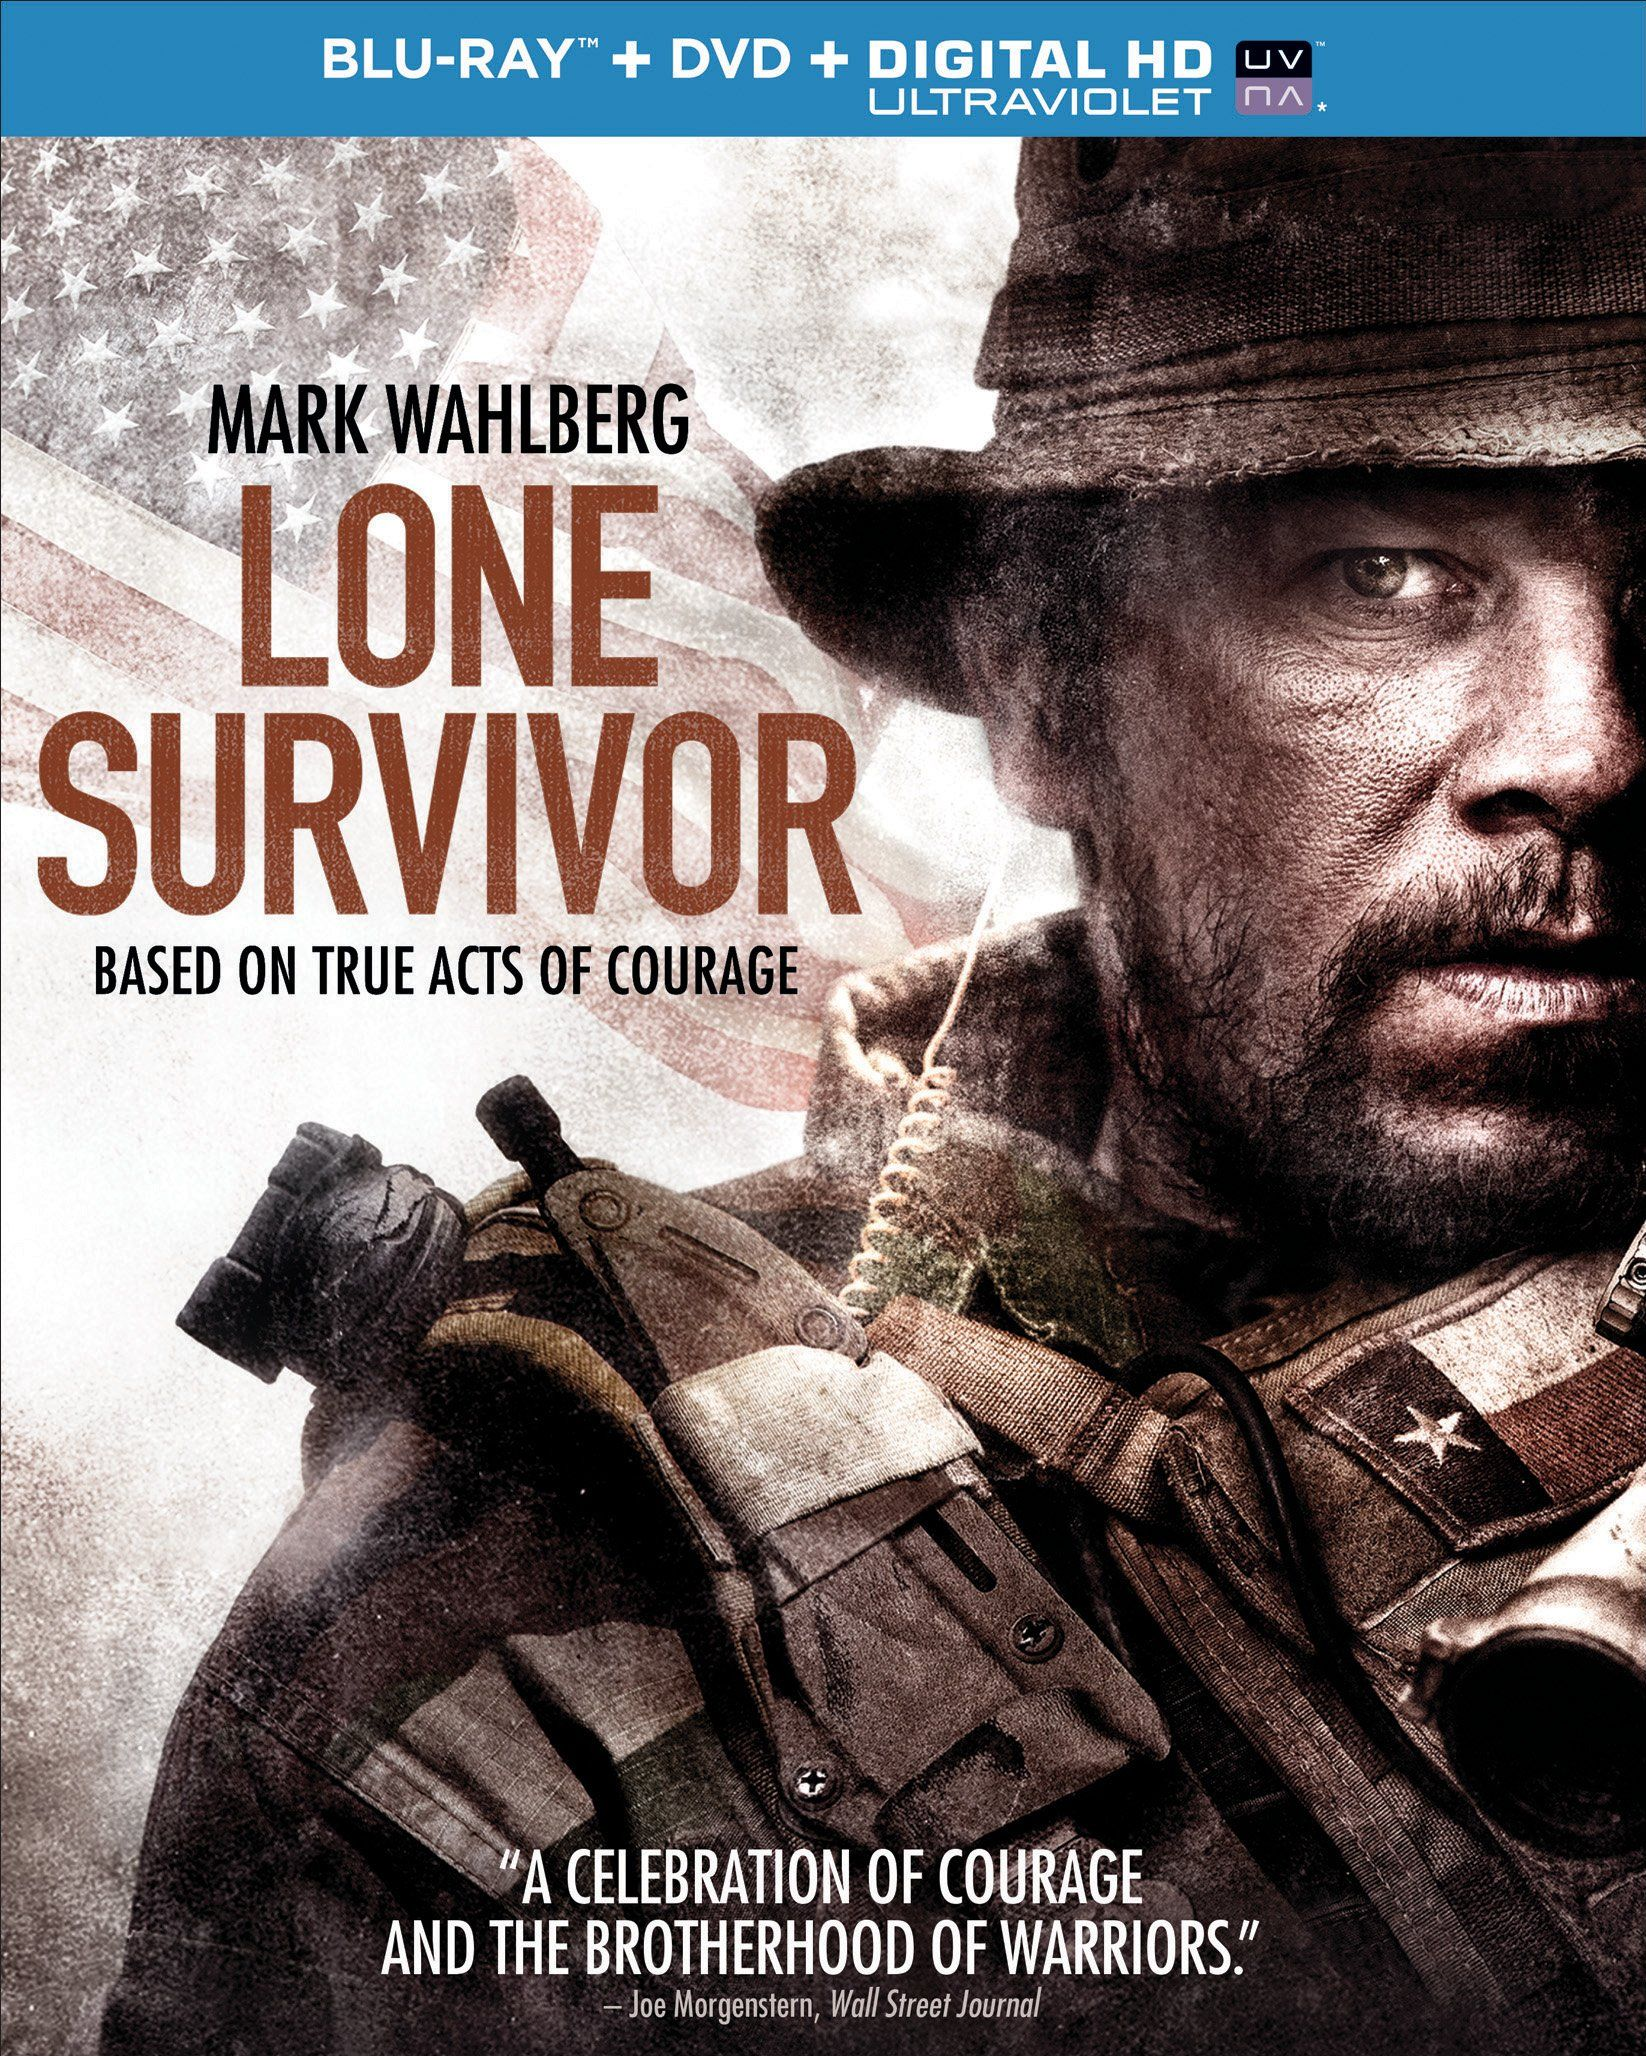 Lone Survivor was released on Blu-ray on June 3, 2014